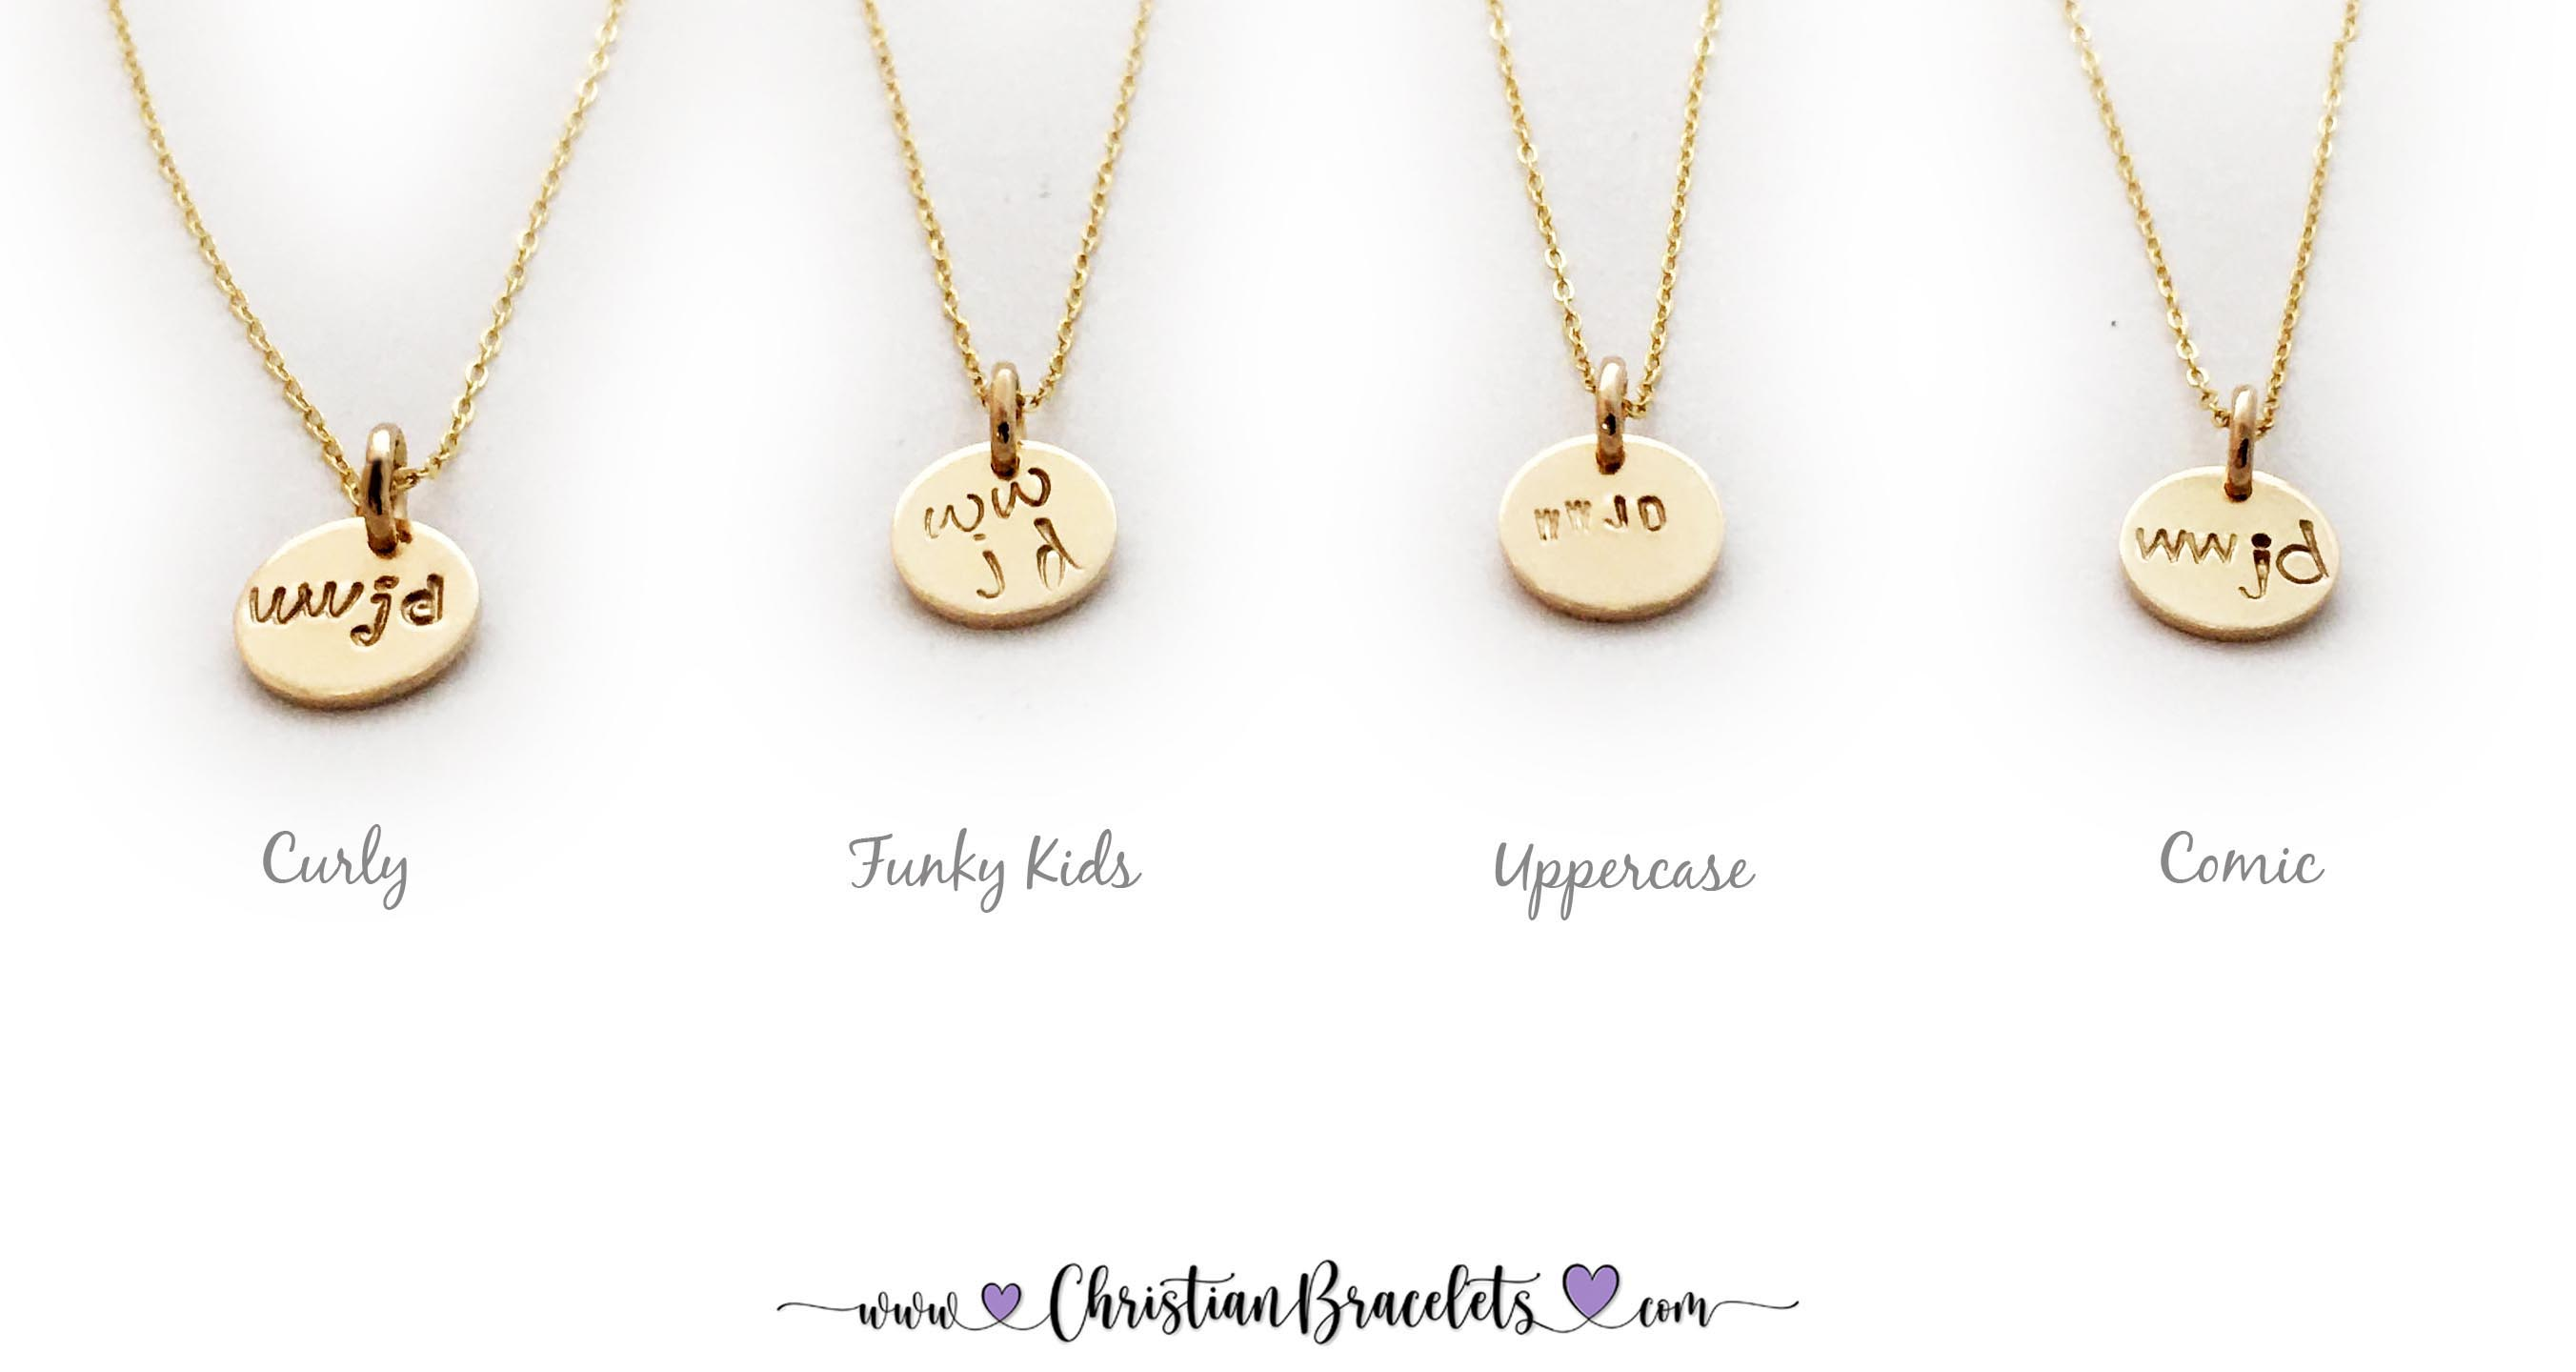 WWJD Gold Necklaces